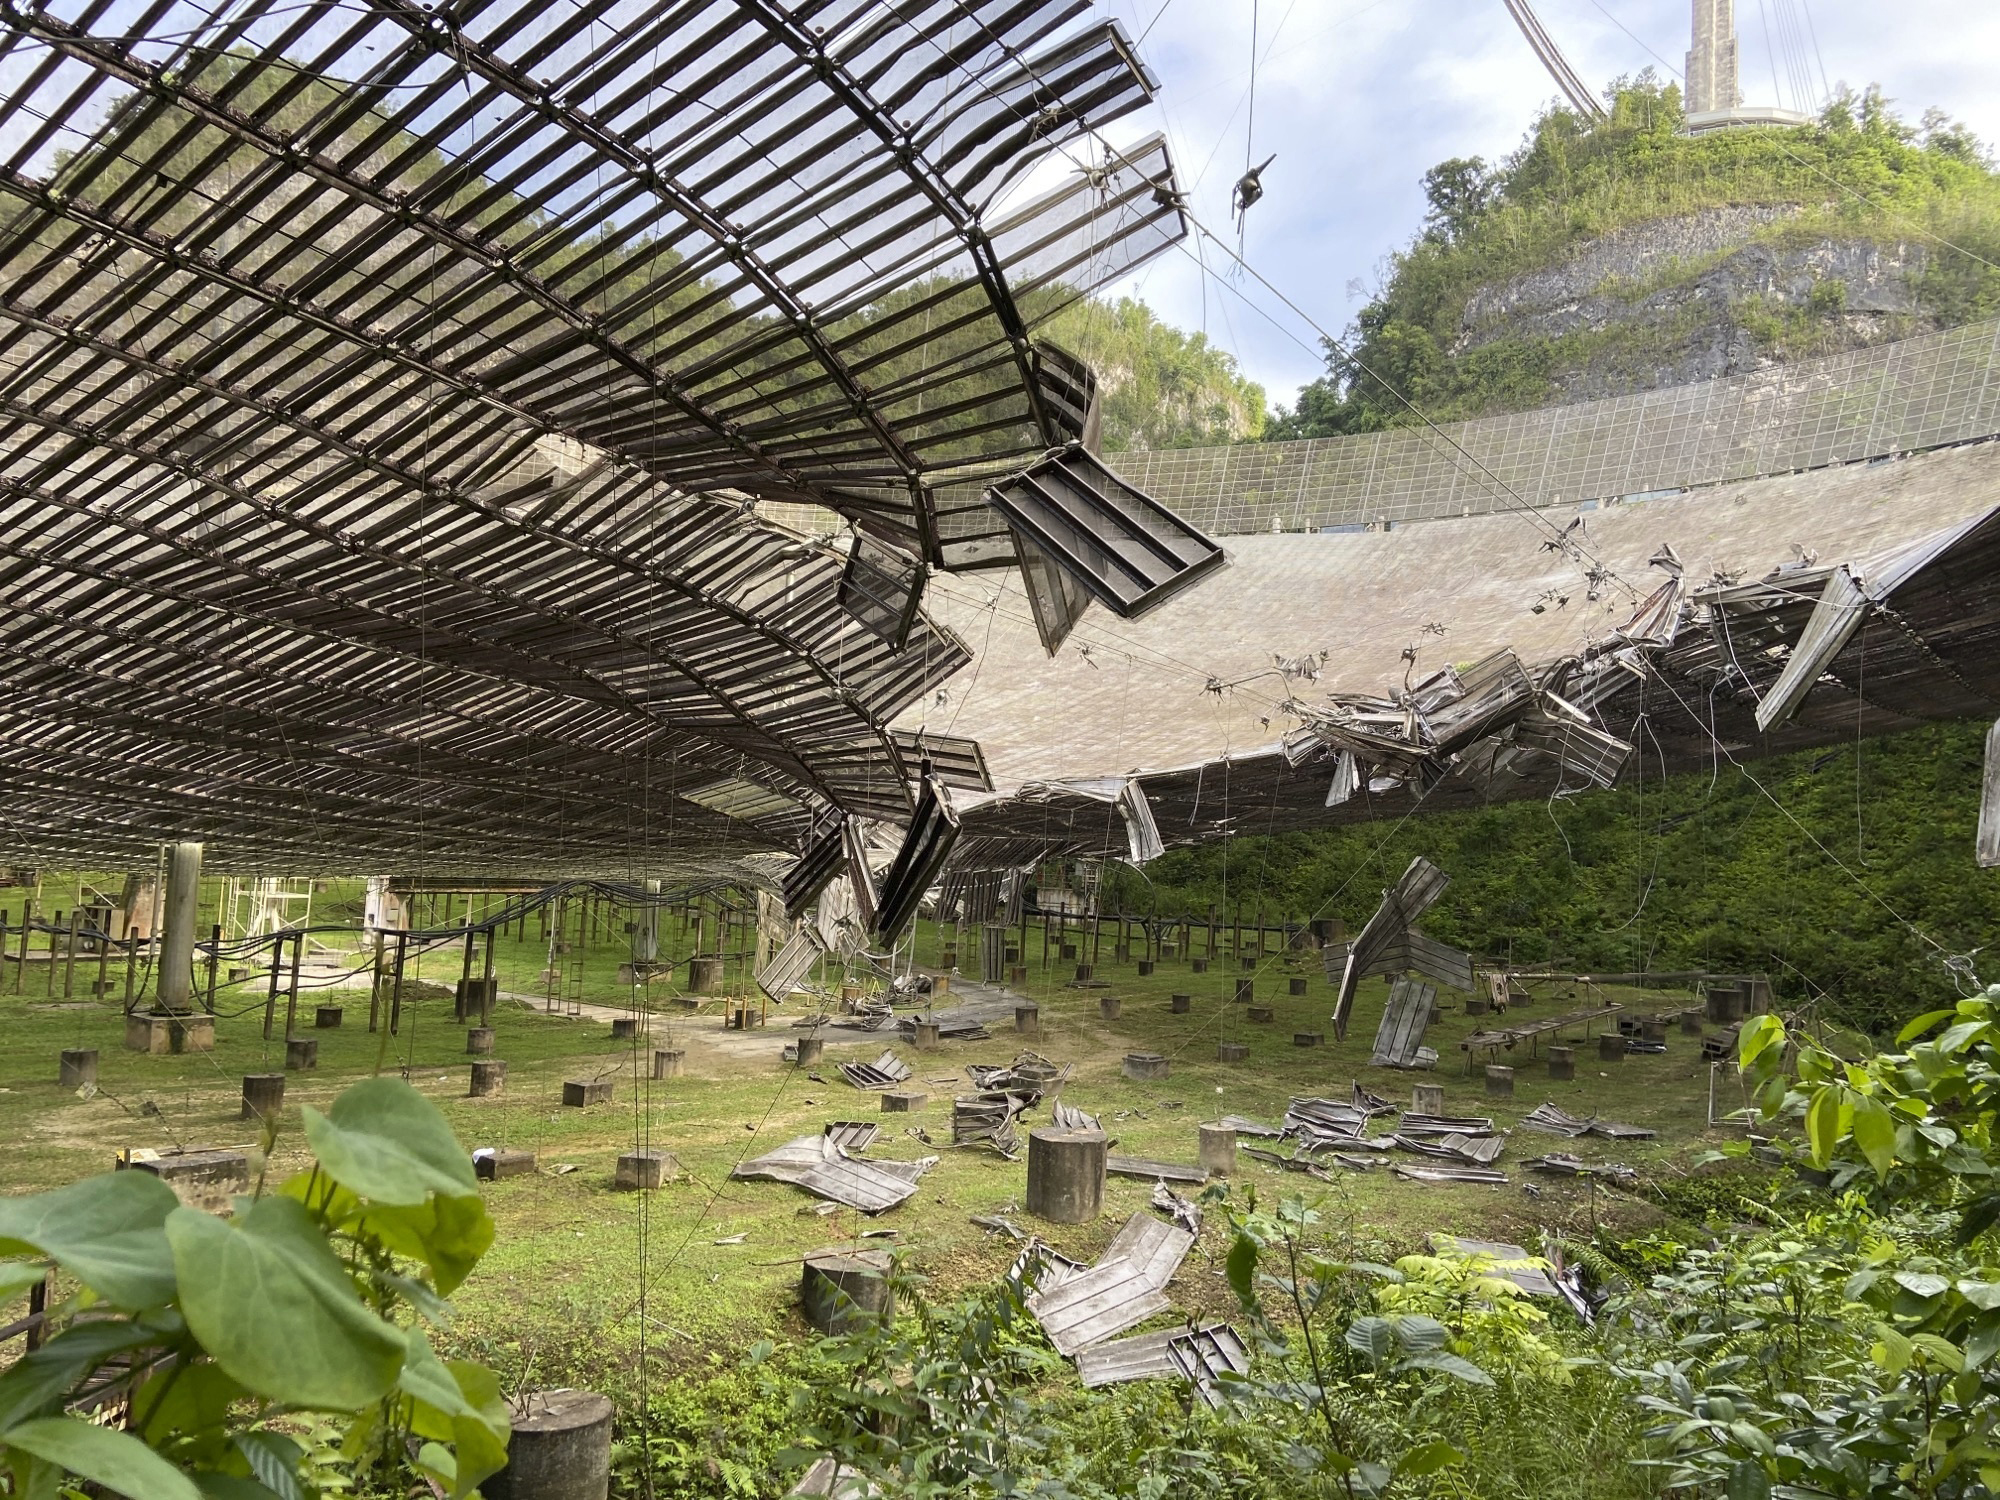 This Aug. 11, 2020 file photo, provided by the Arecibo Observatory, shows the damage done by a broken cable that supported a metal platform, creating a 100-foot (30-meter) gash to the radio telescope's reflector dish in Arecibo, Puerto Rico.